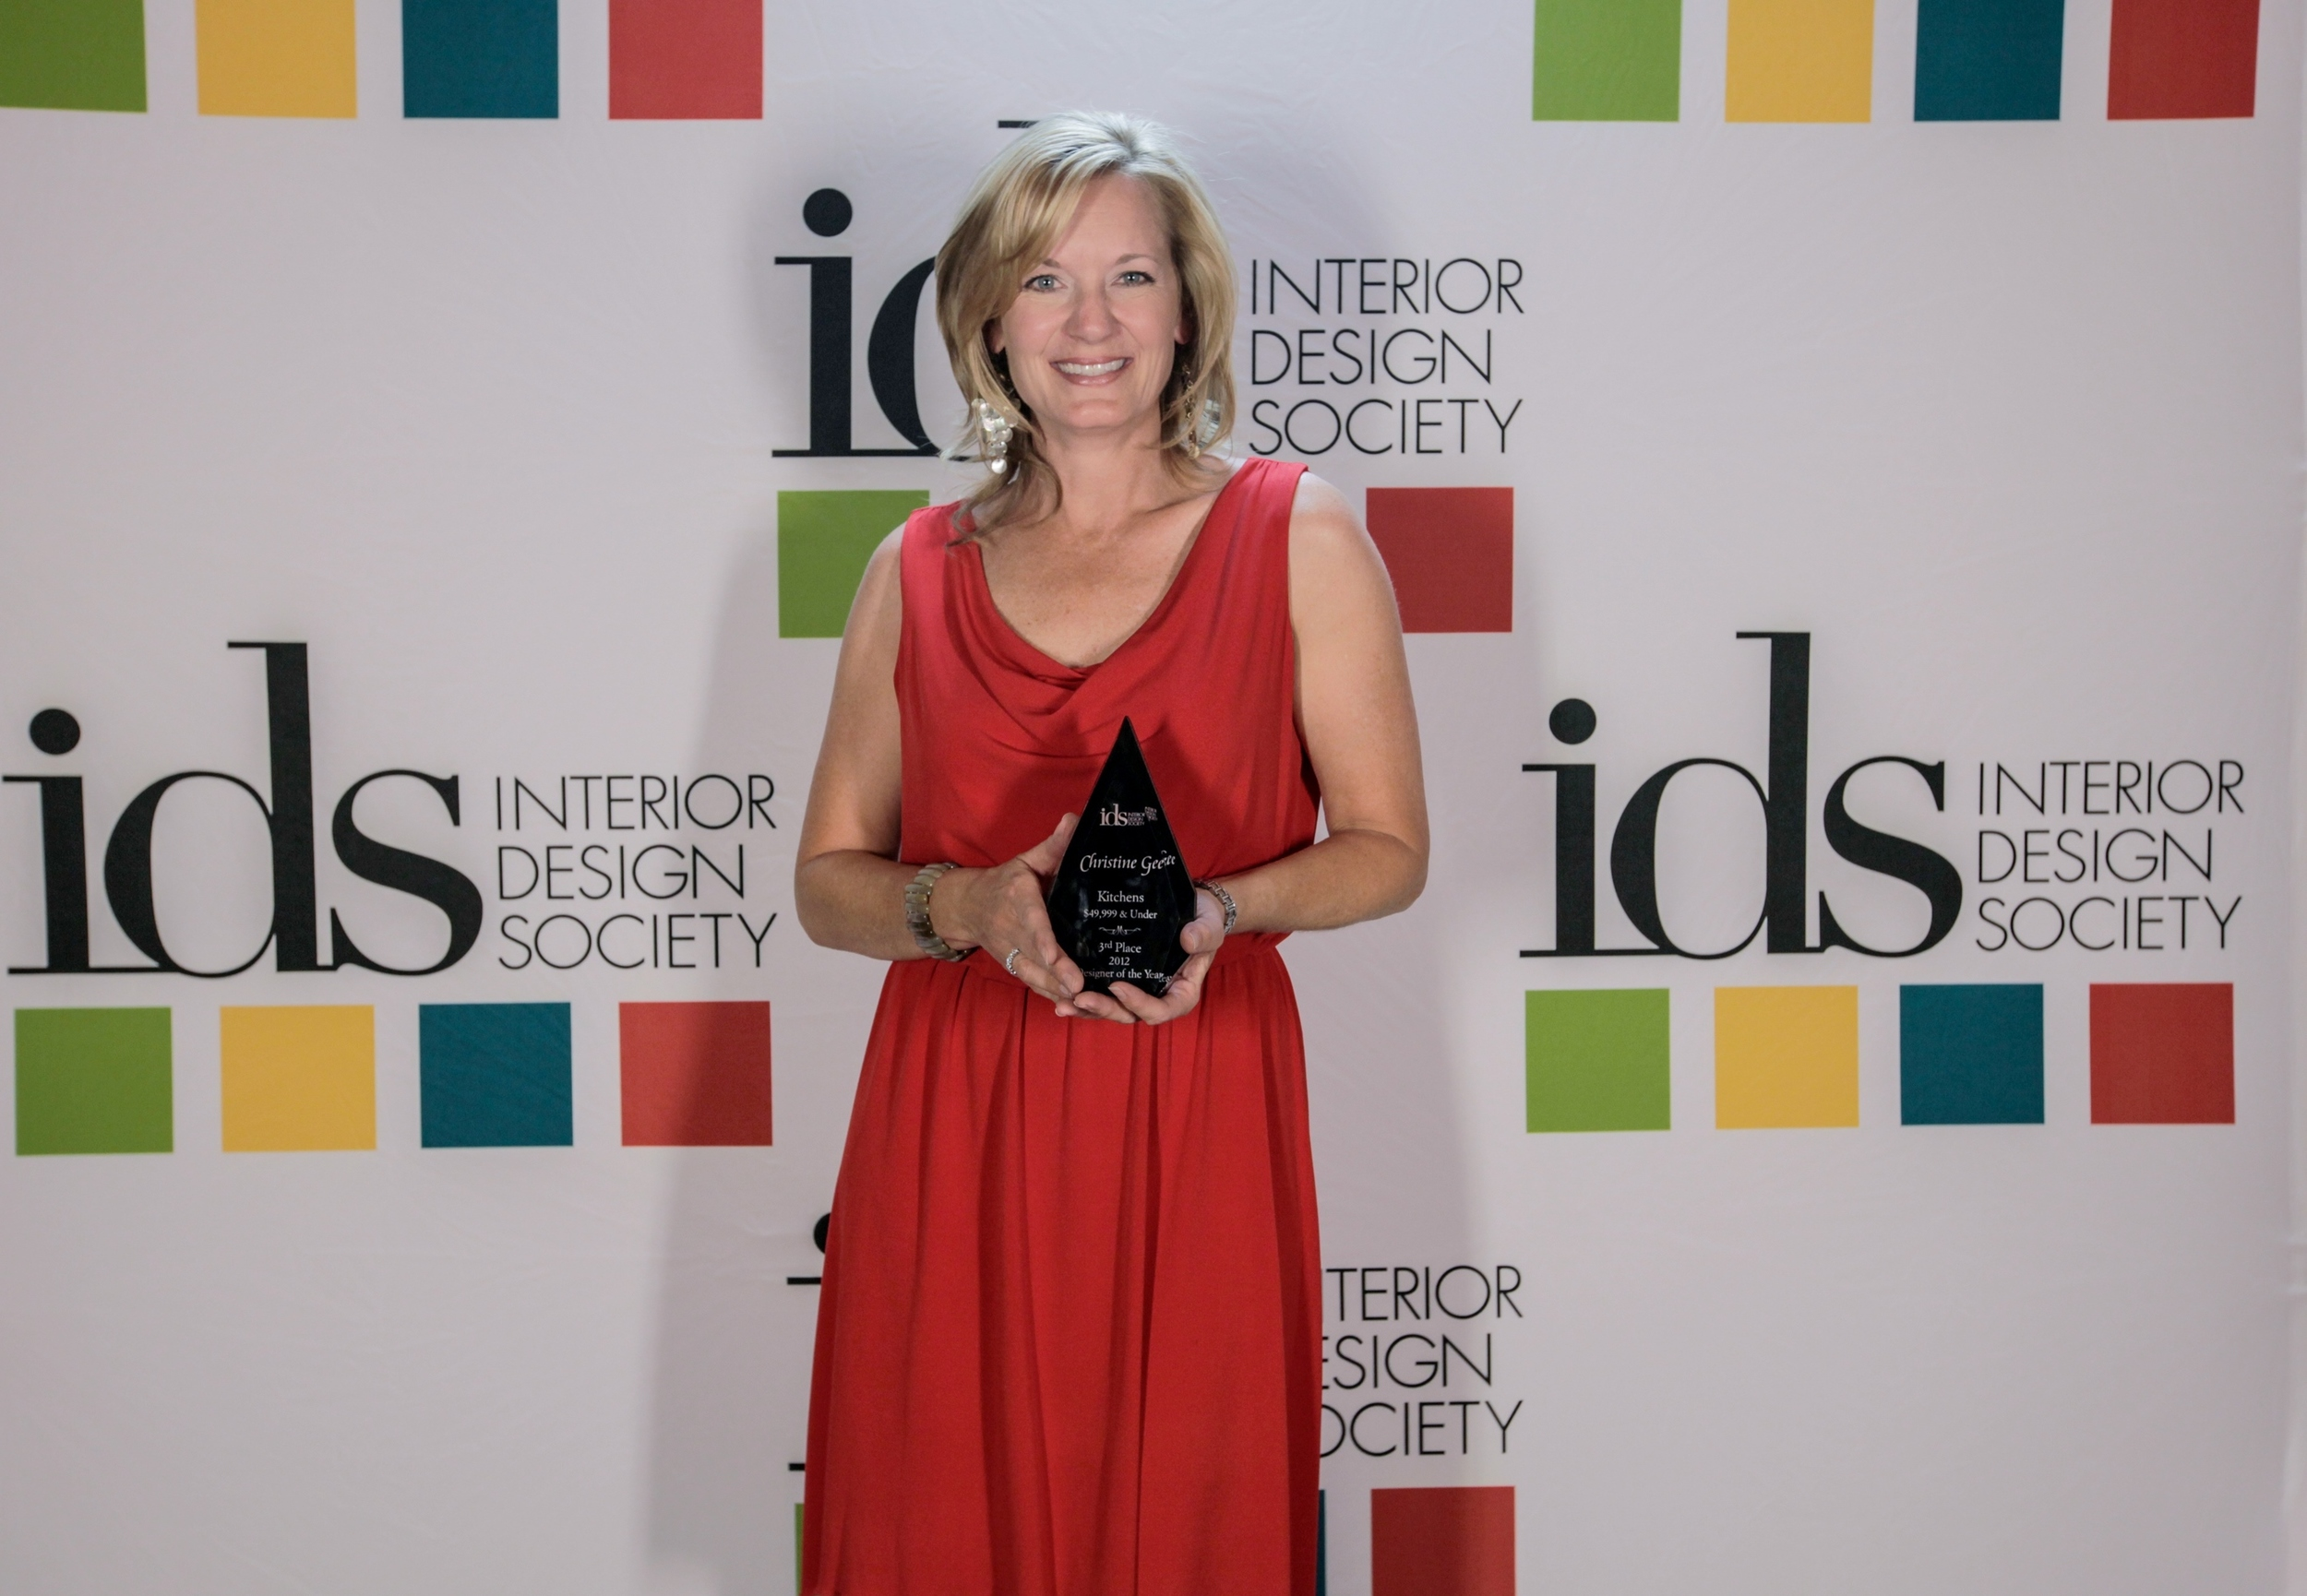 Awarded 2012 Designer of the Year